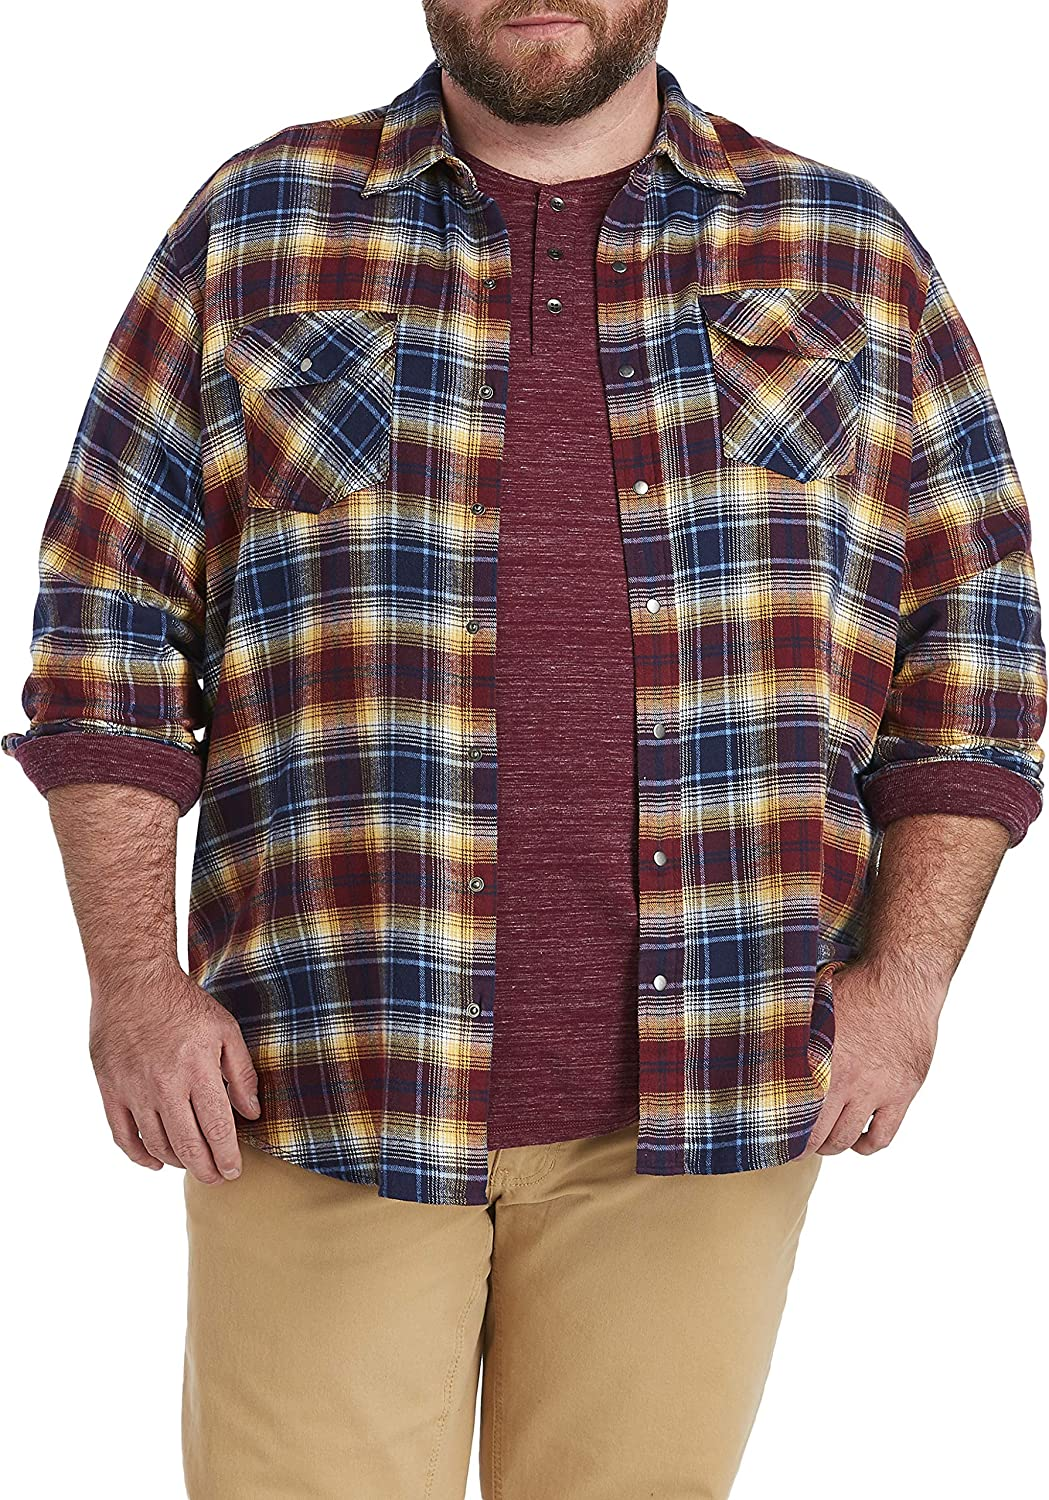 Harbor Bay by DXL Big and Tall Large Plaid Flannel Sport Shirt, Riviera Blue